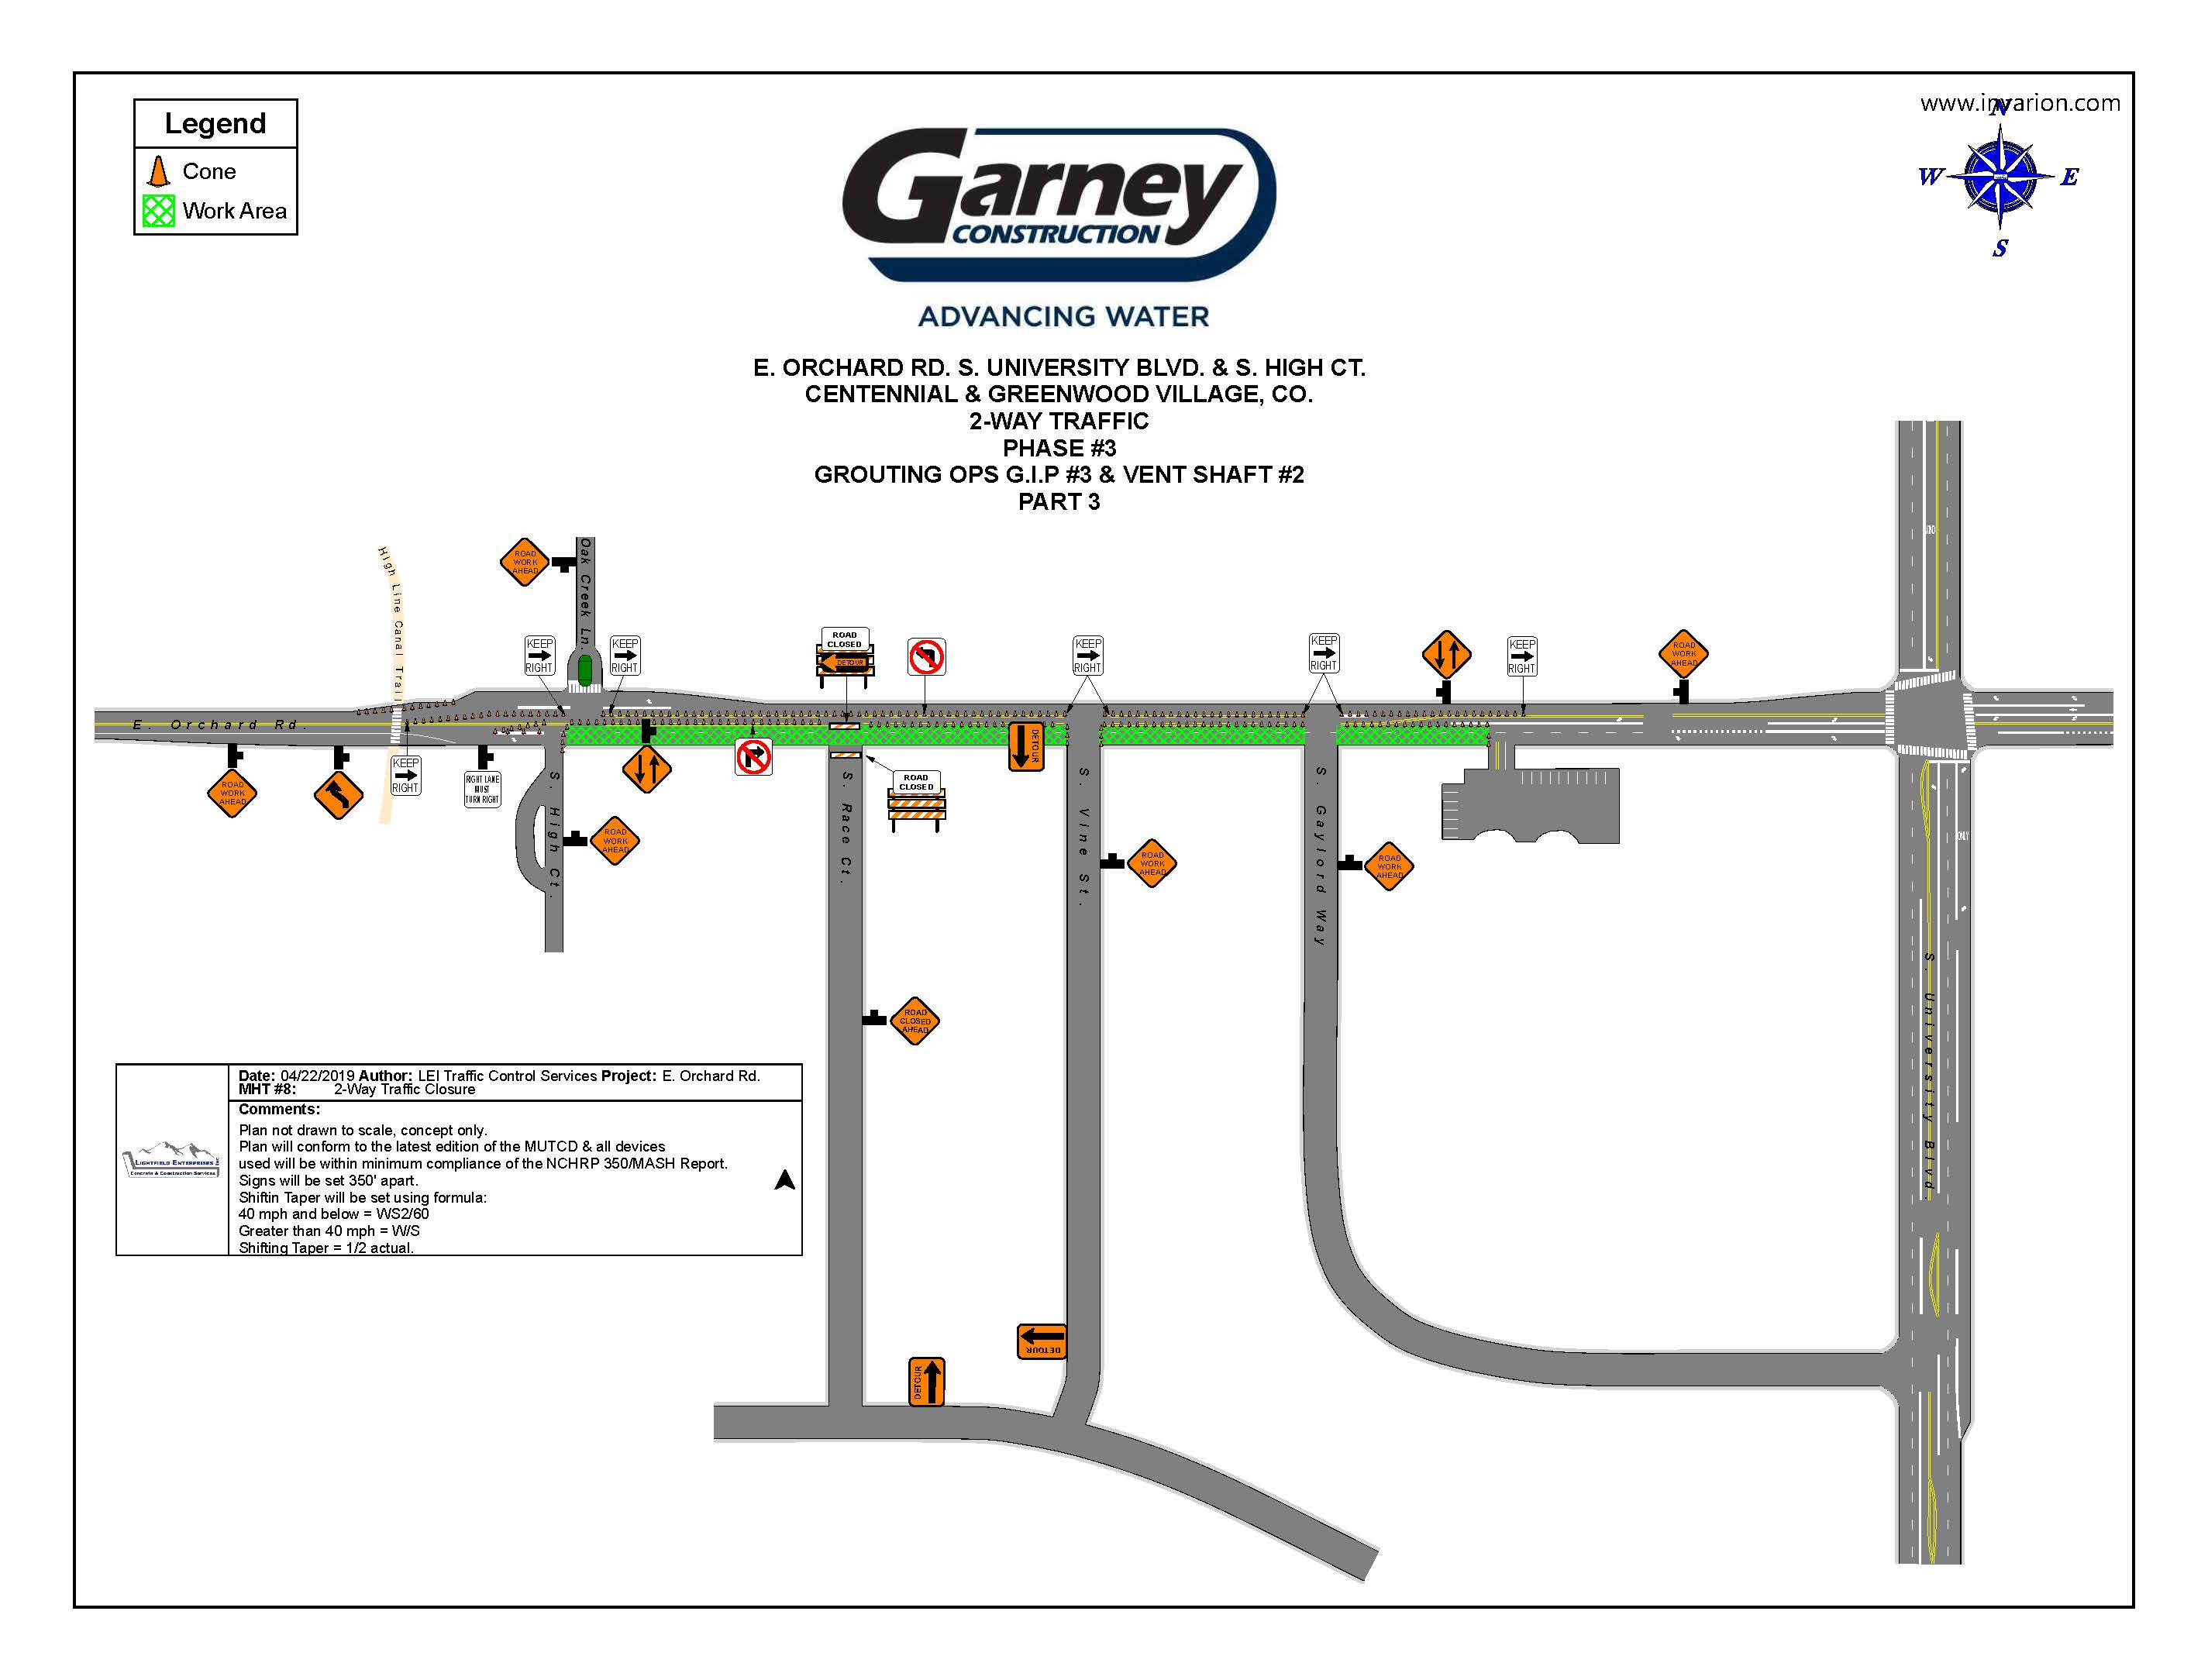 GARNEY COLSMAN TUNNEL PH 3 PART 3 TWT  RCA MHT 9